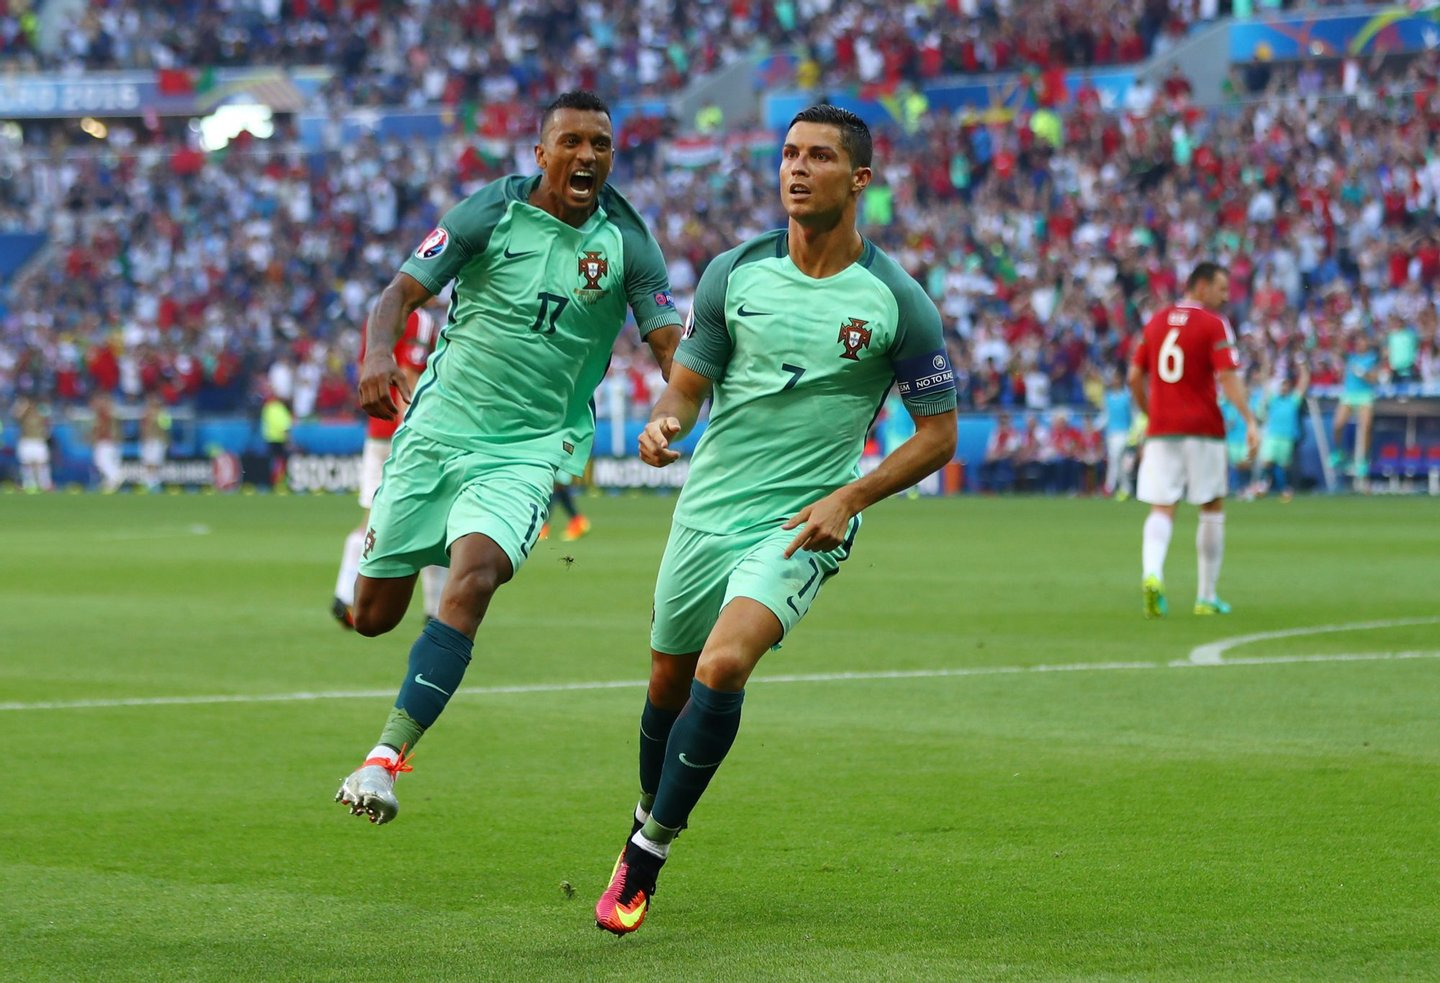 LYON, FRANCE - JUNE 22: Cristiano Ronaldo (R) of Portugal celebrates scoring his team's second goal with his team mate Nani (L) during the UEFA EURO 2016 Group F match between Hungary and Portugal at Stade des Lumieres on June 22, 2016 in Lyon, France. (Photo by Michael Steele/Getty Images)